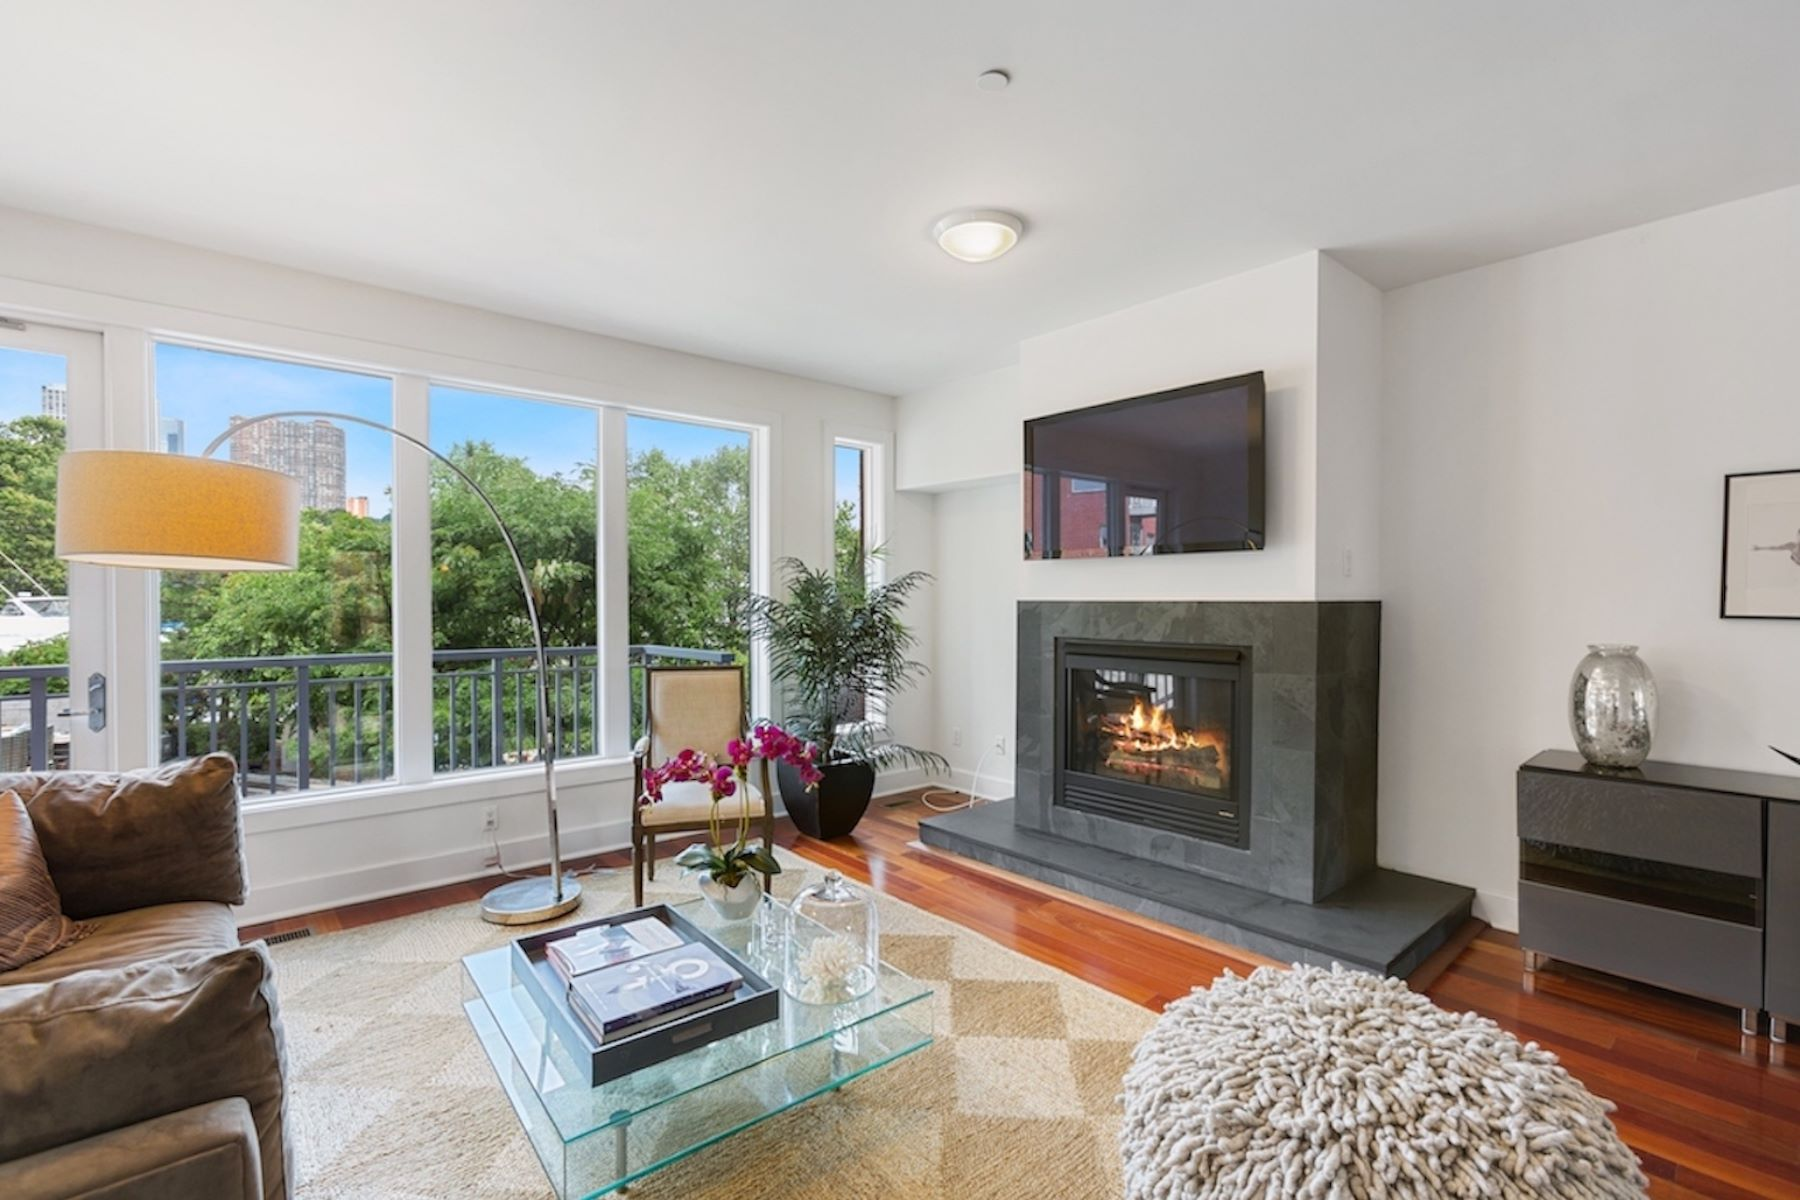 townhouses for Active at 16 Vela Way Edgewater, New Jersey 07020 United States